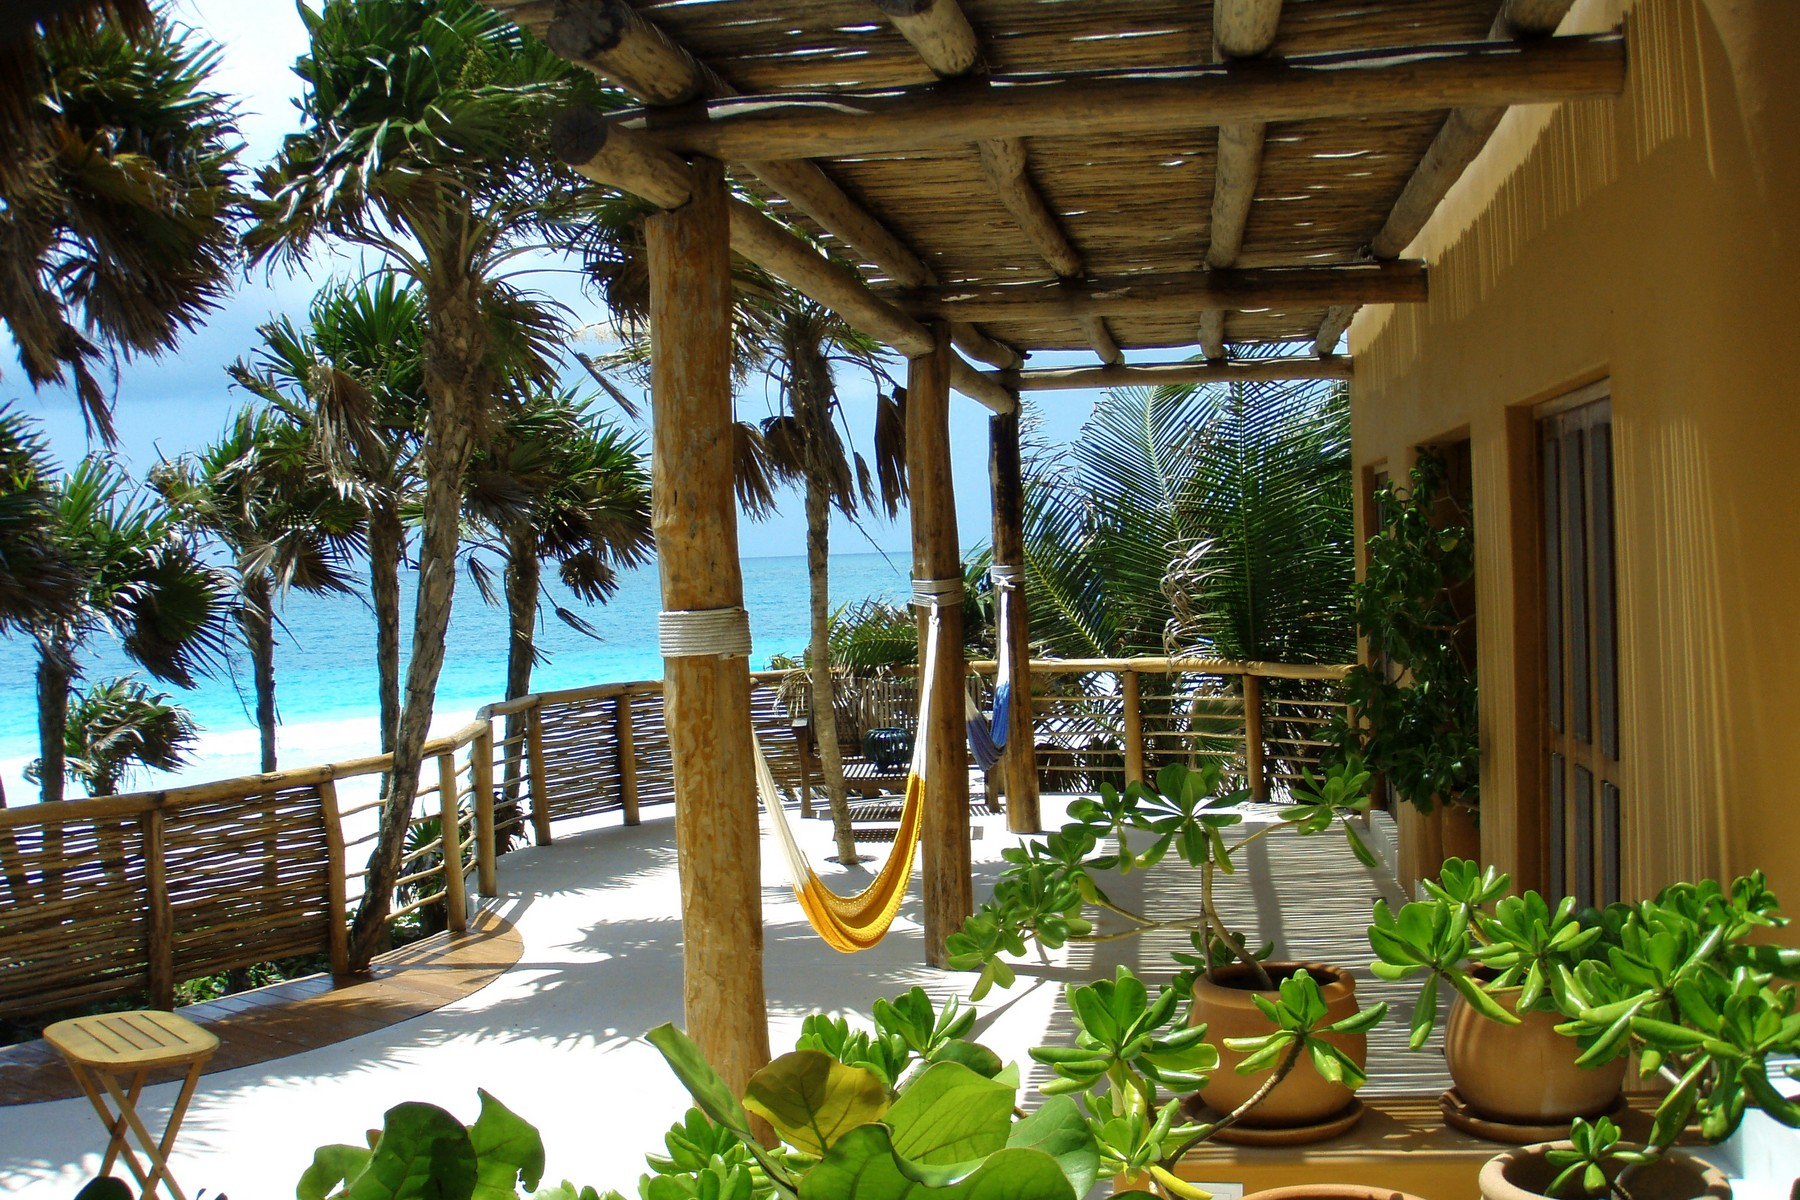 Additional photo for property listing at CASA SIANKAANA Camino Tulum-Boca Paila Lote Fracc. 1 Tulum, Quintana Roo 77780 Mexico